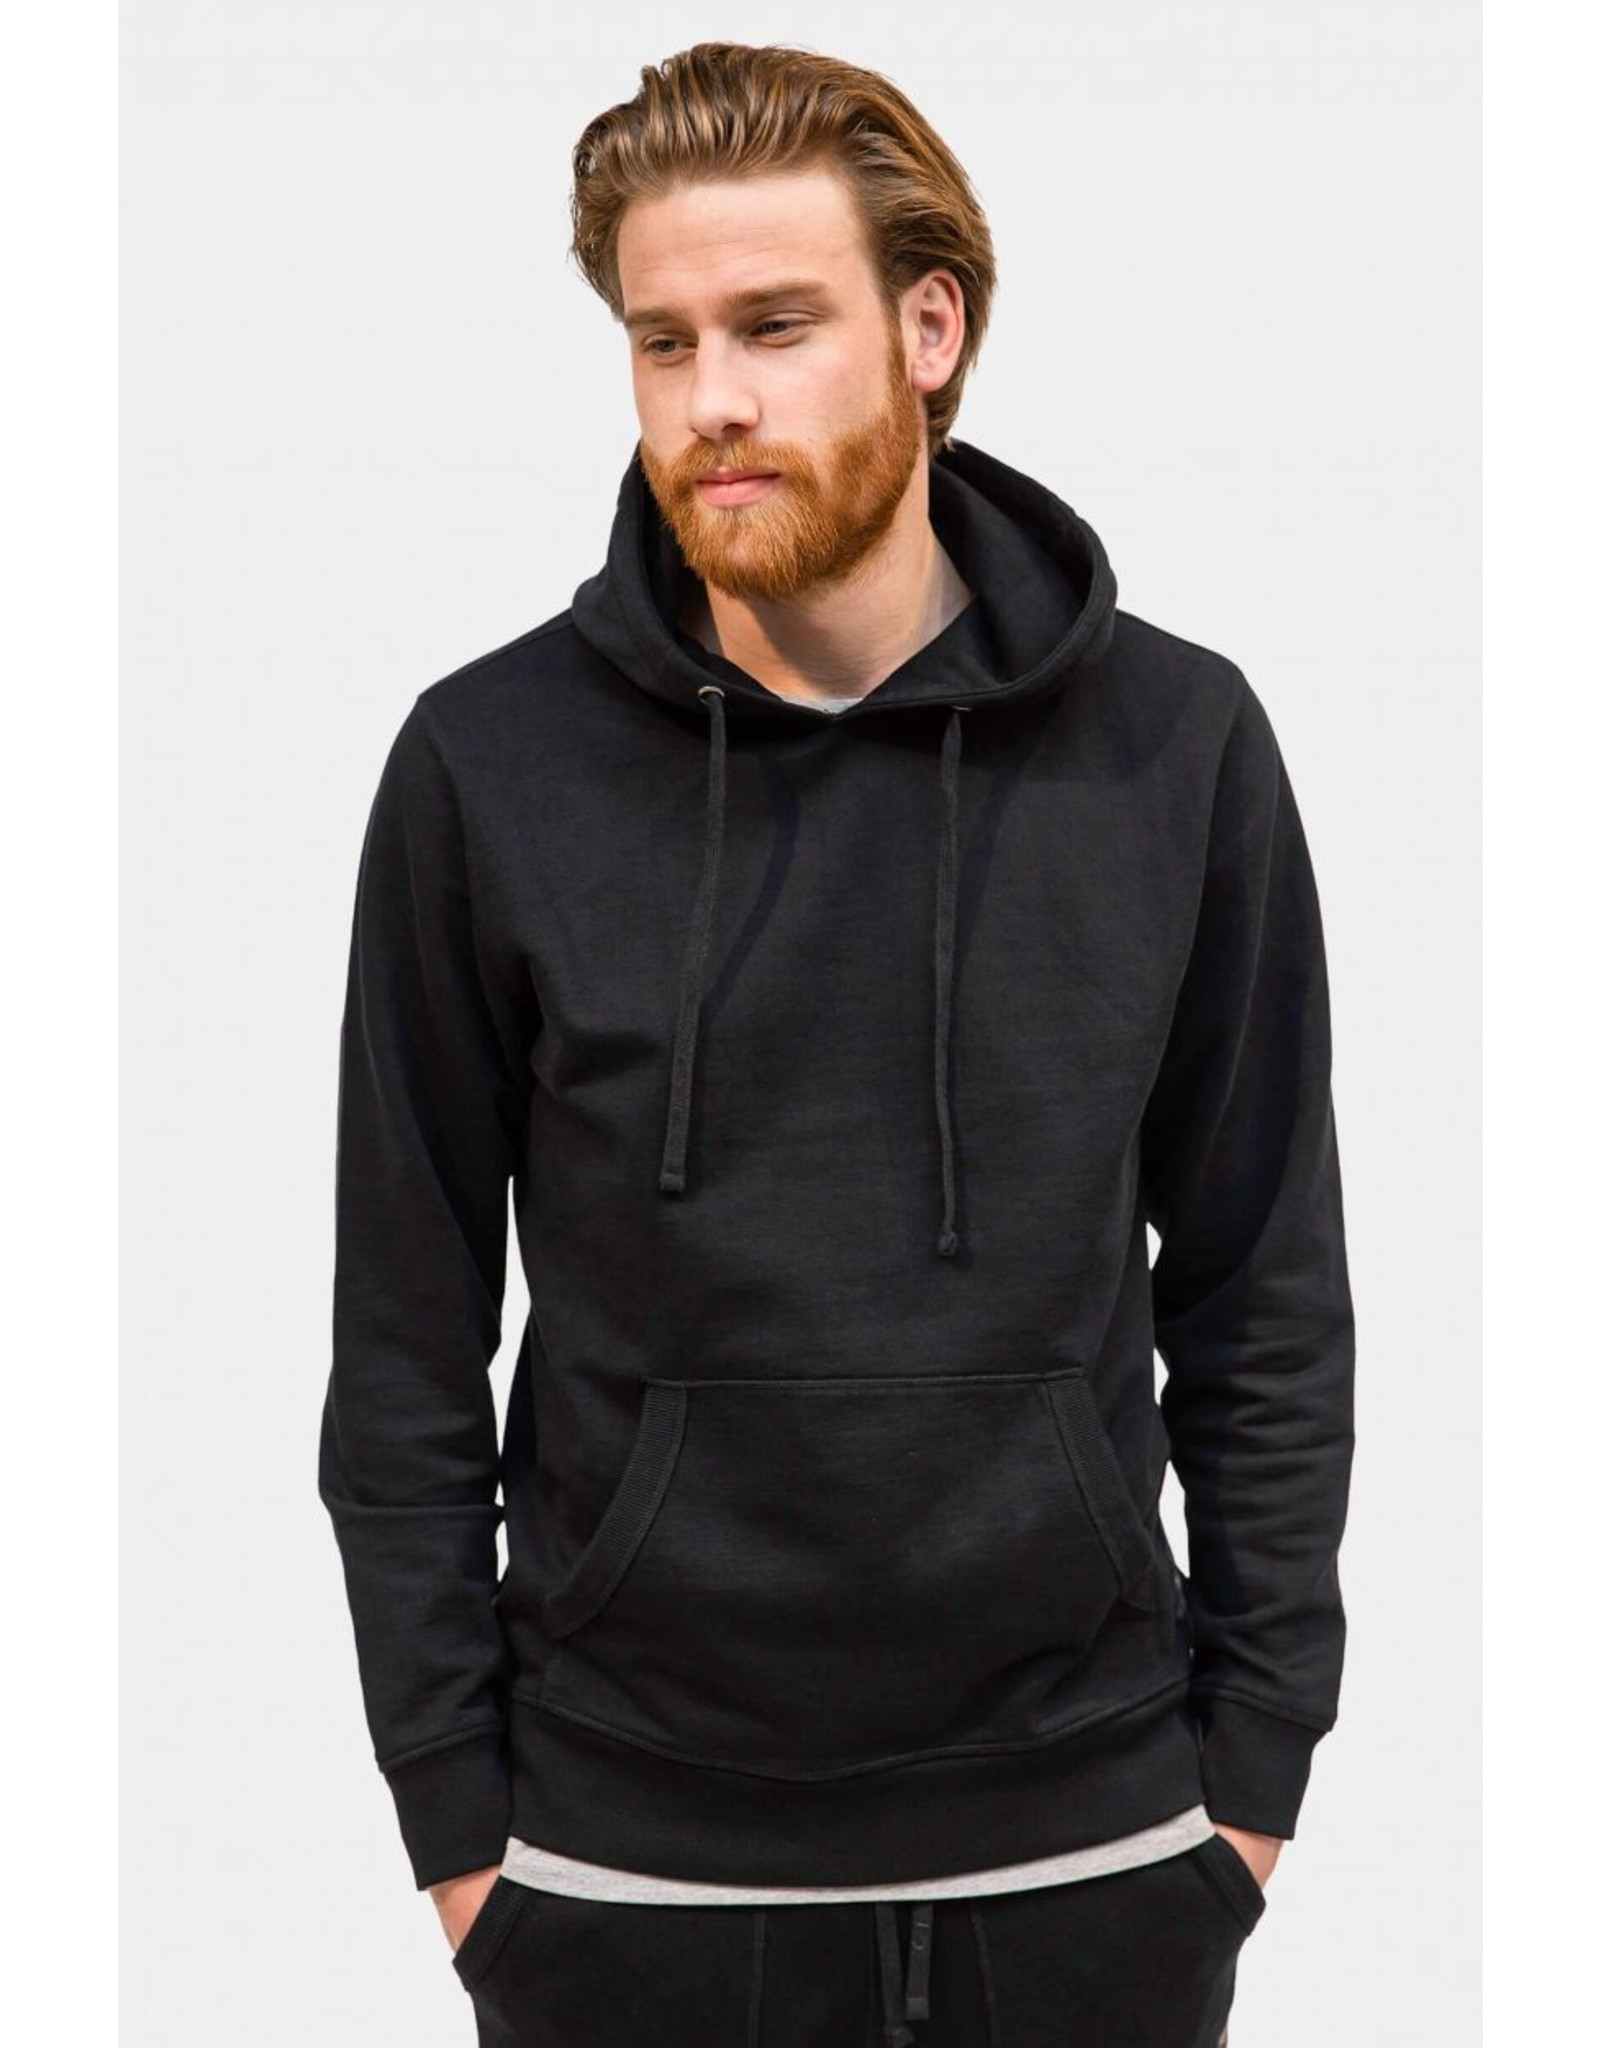 Butcher of Blue Classic hooded l/s